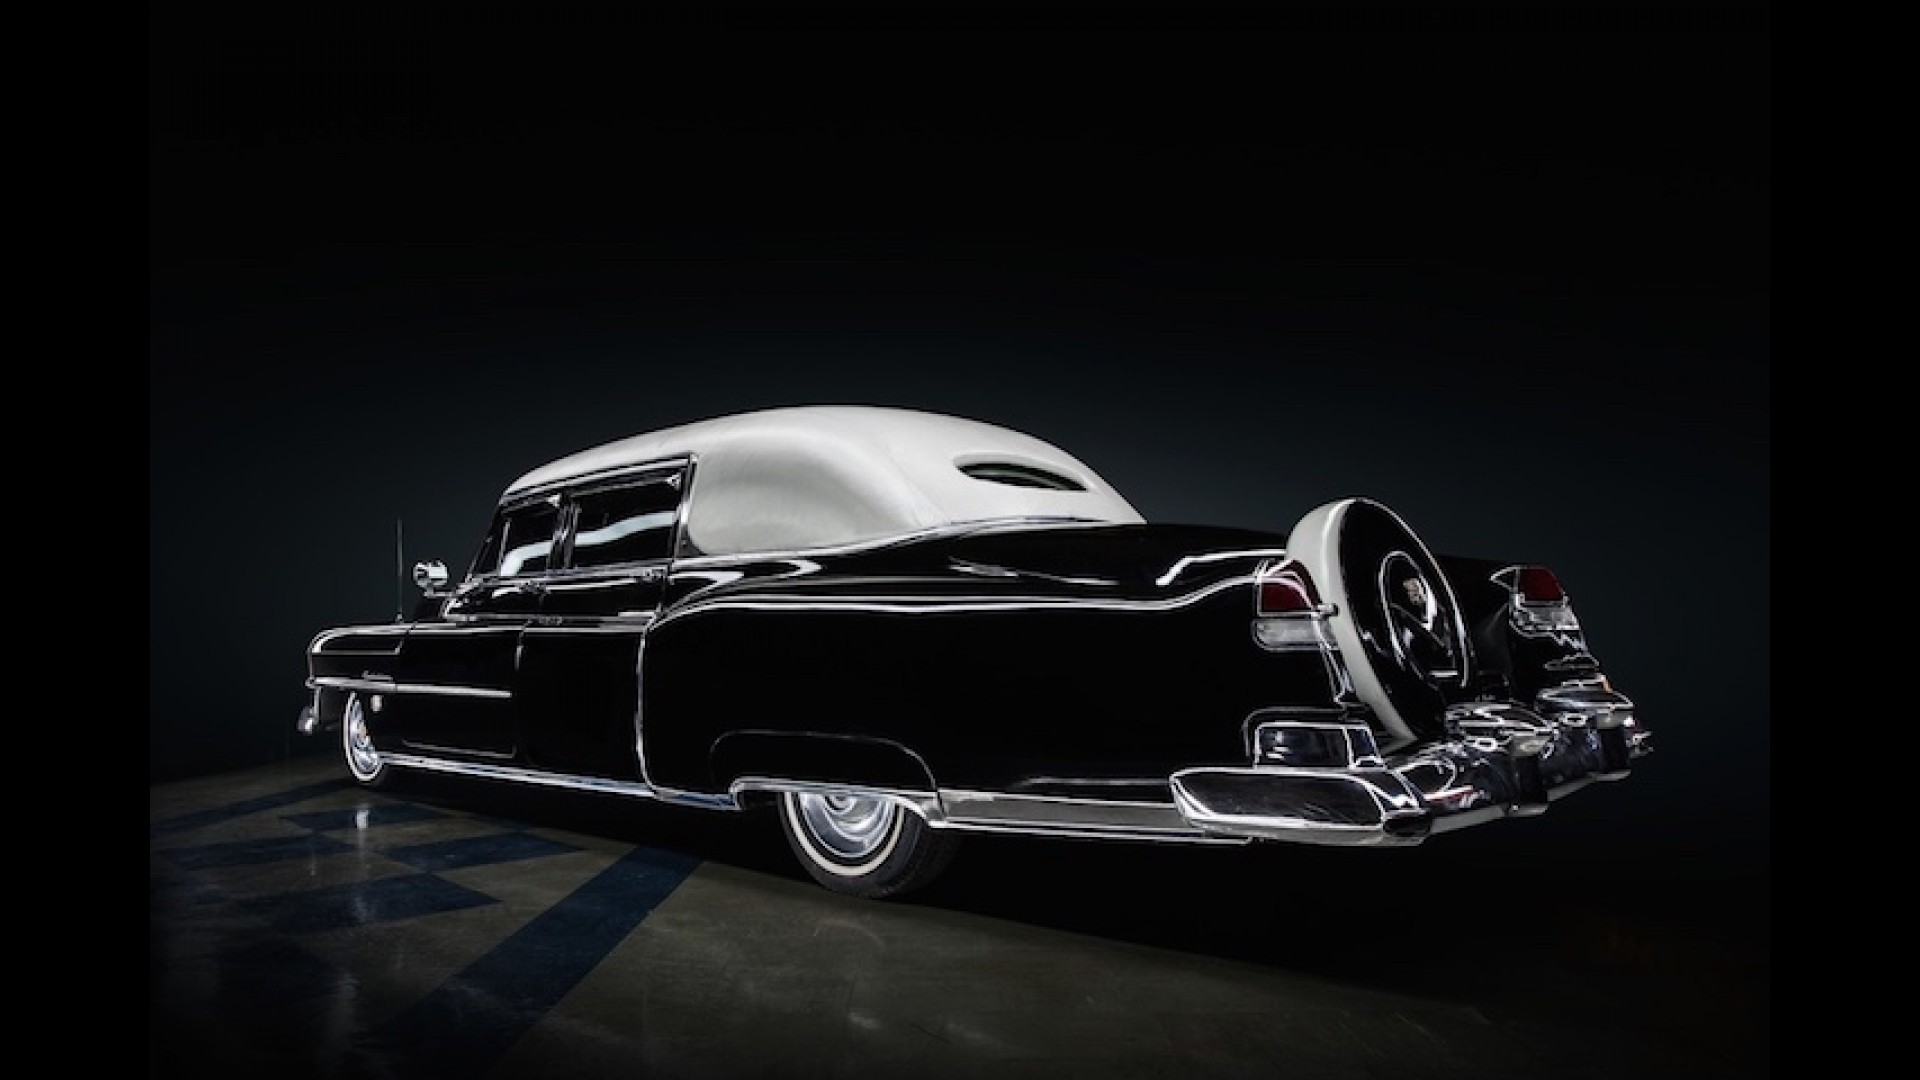 Eisenhower's Stunning 1952 Cadillac Shows Up on eBay